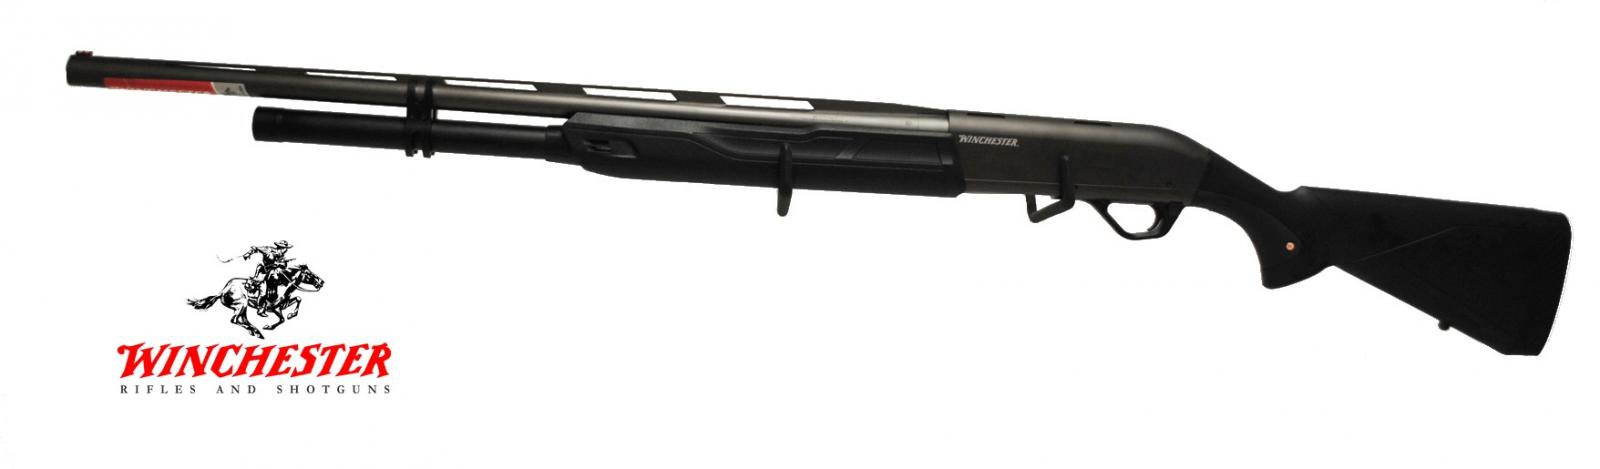 Fusil WINCHESTER SX4 Cal 12/76 9cps